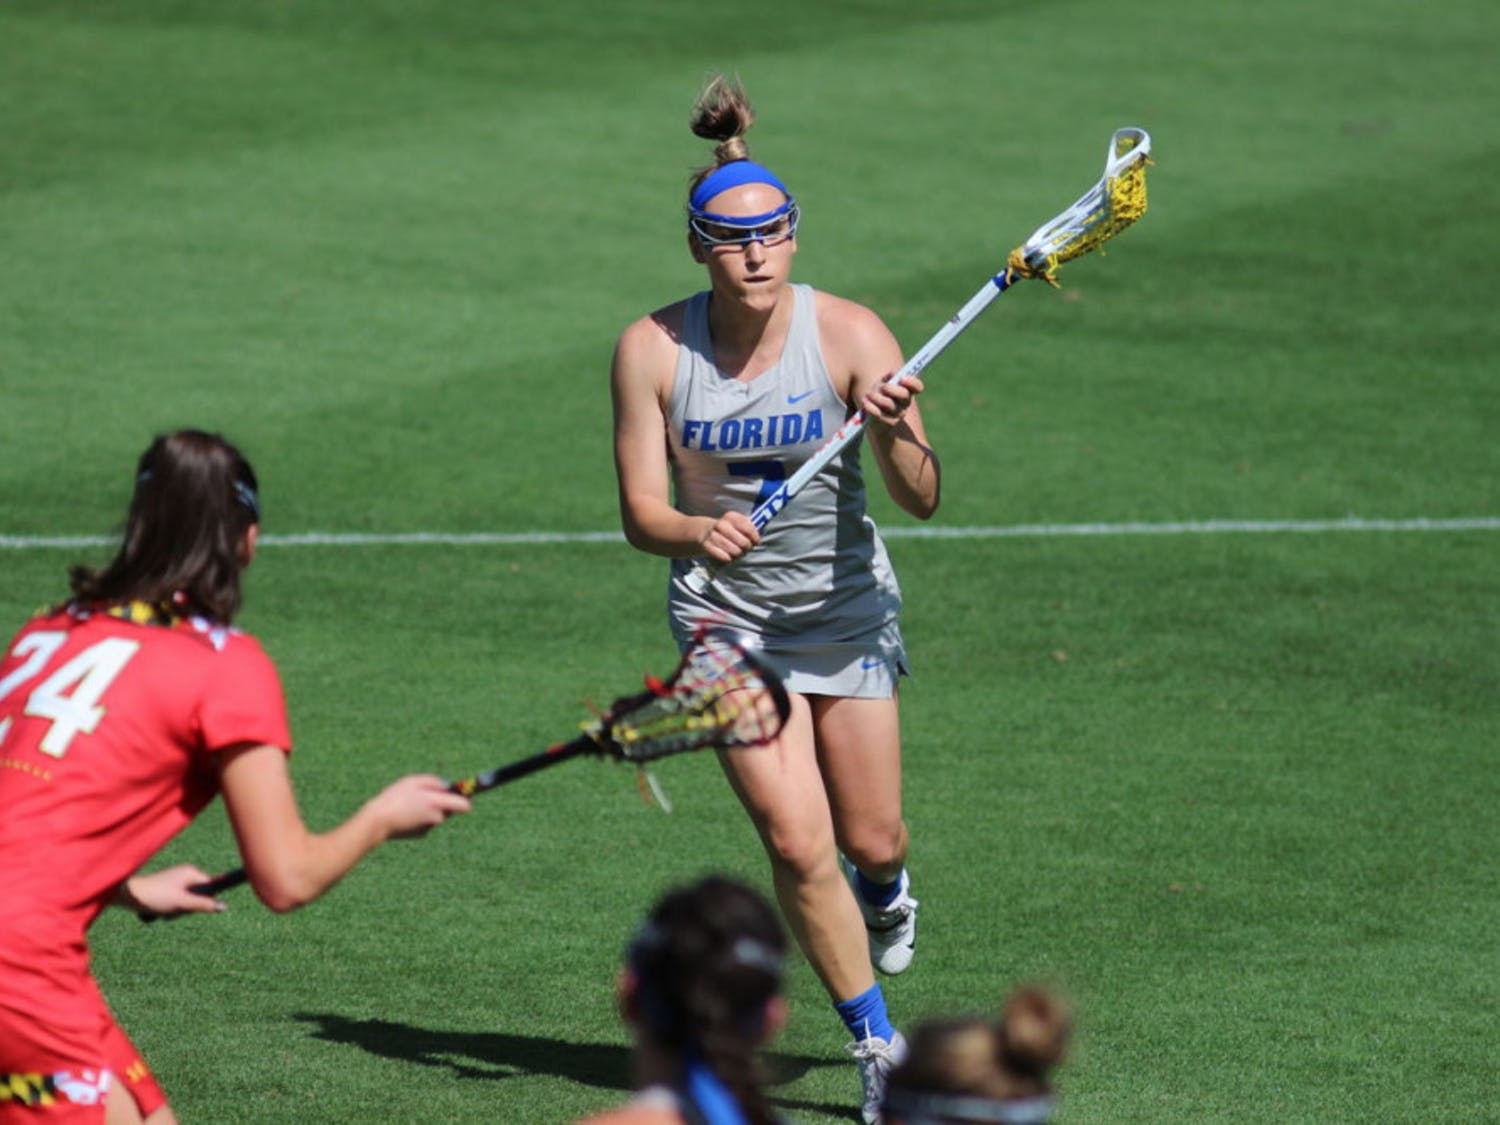 Senior Shayna Pirreca and her sister, Sydney, led UF to victory over Colorado in the second round of the NCAA Tournament on Sunday with a combined seven goals.